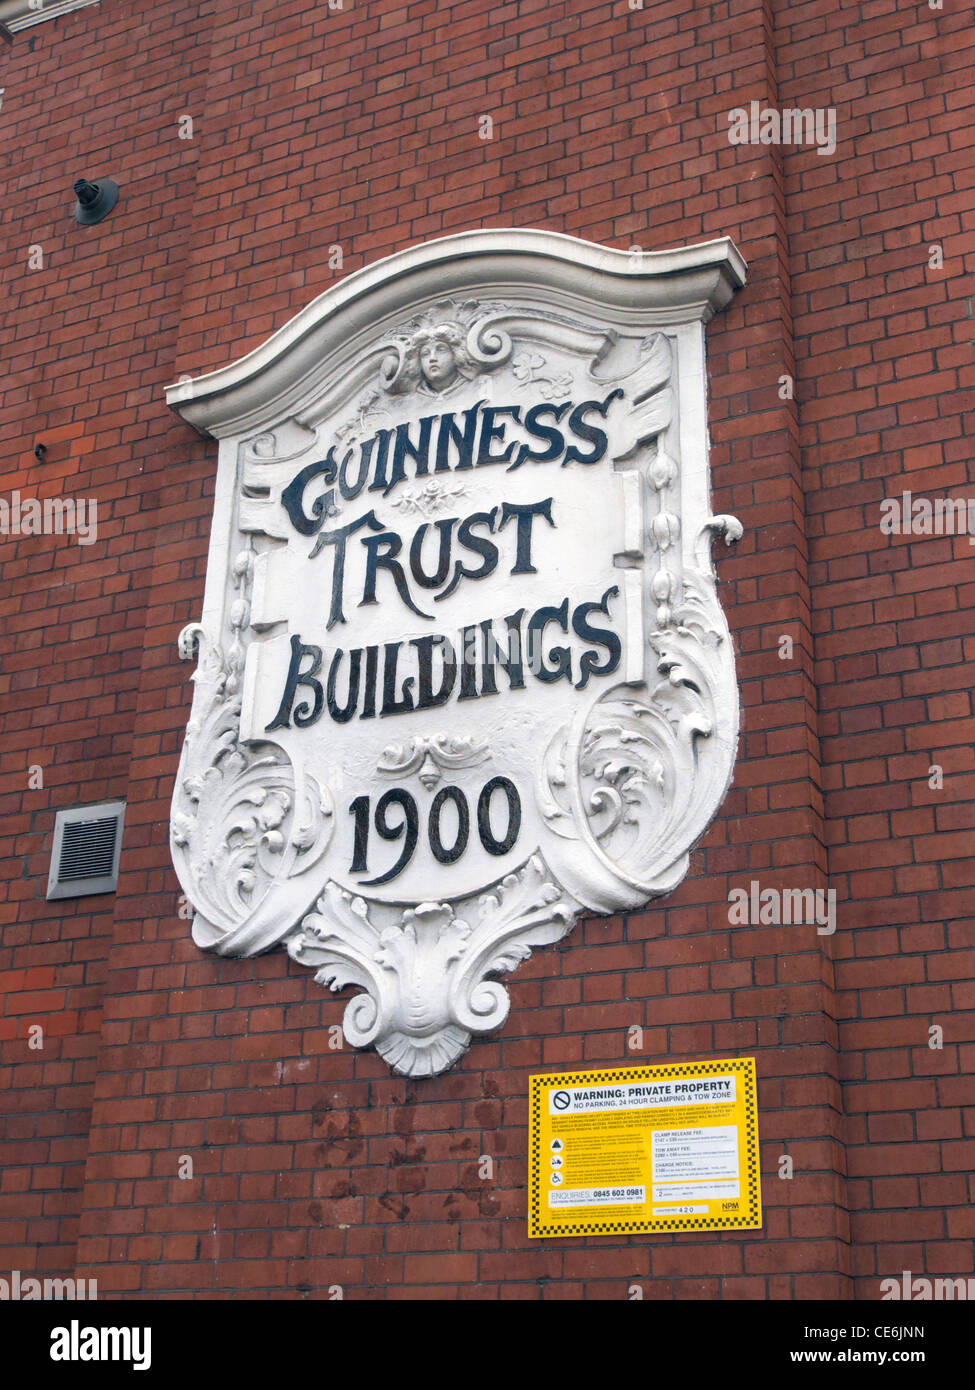 united kingdom west london fulham palace road guinness trust building sign - Stock Image